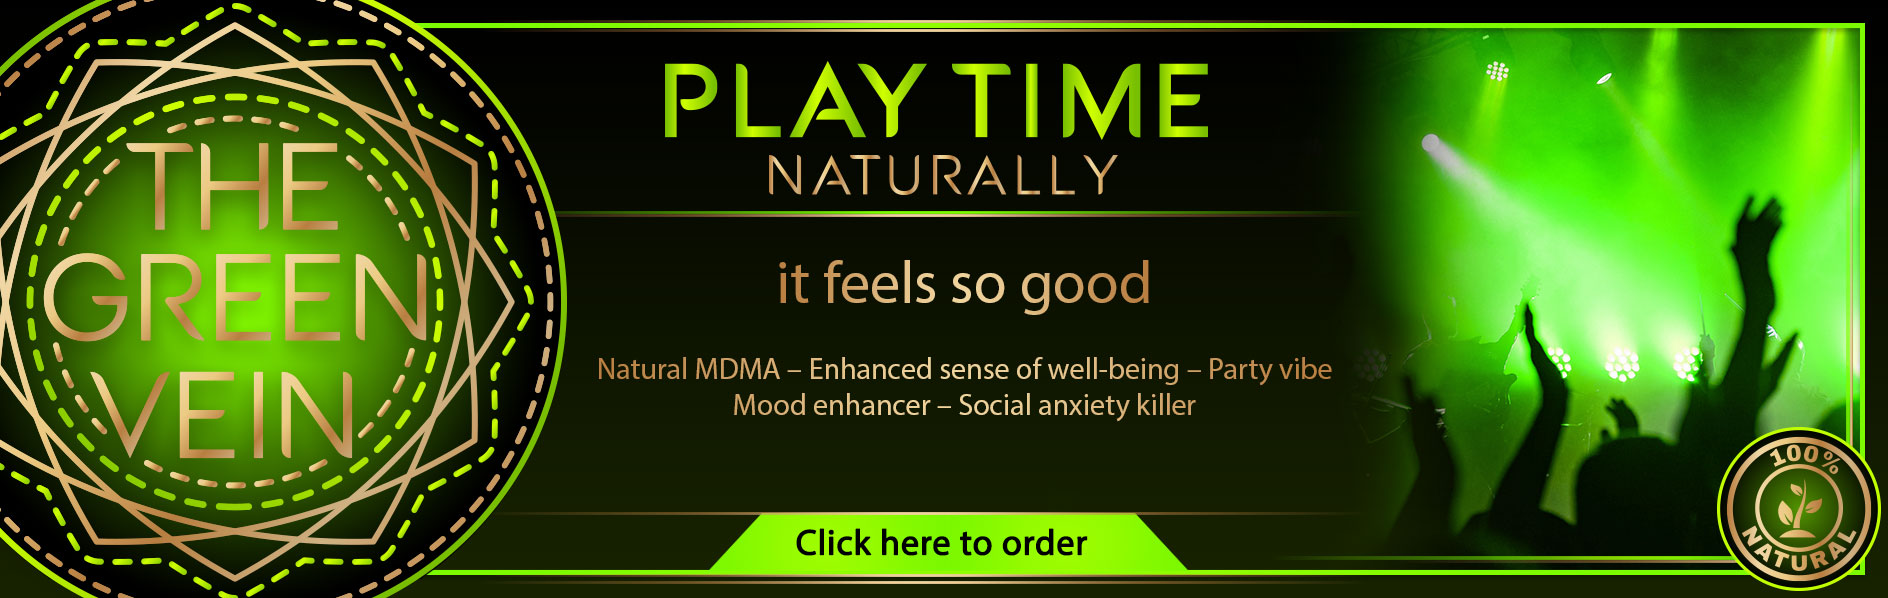 The-Green-Vein-Play-Time-Banner